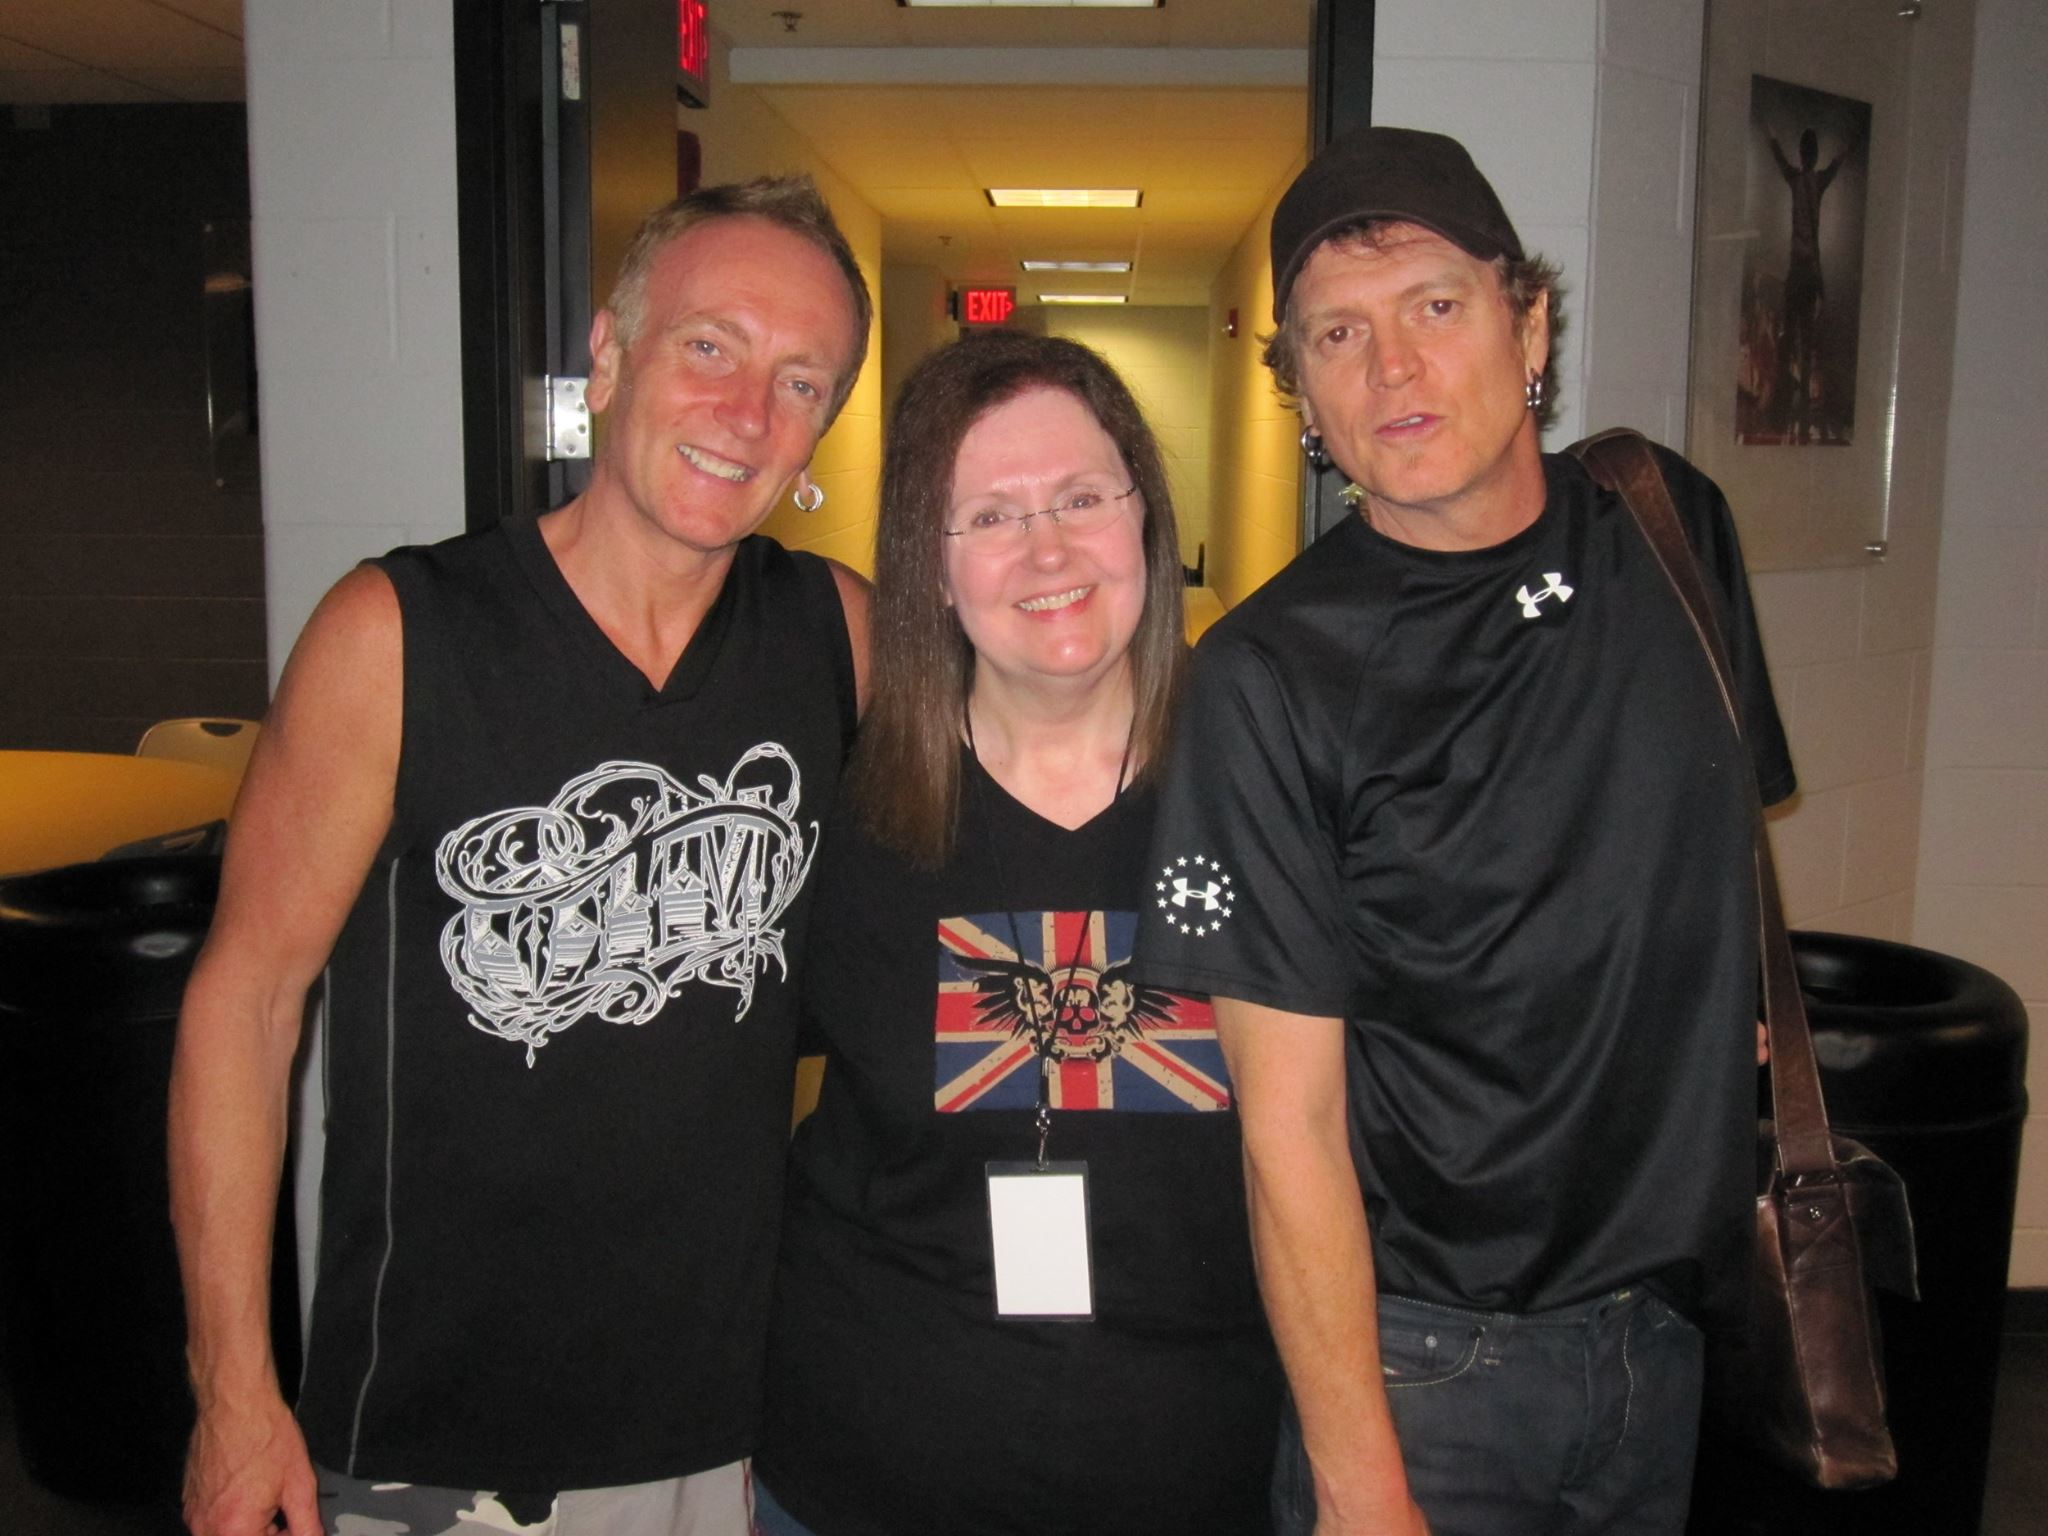 Def leppard meet greets with icjuk designs backstage at att center in san antonio texas september 24th 2011 kristyandbryce Choice Image